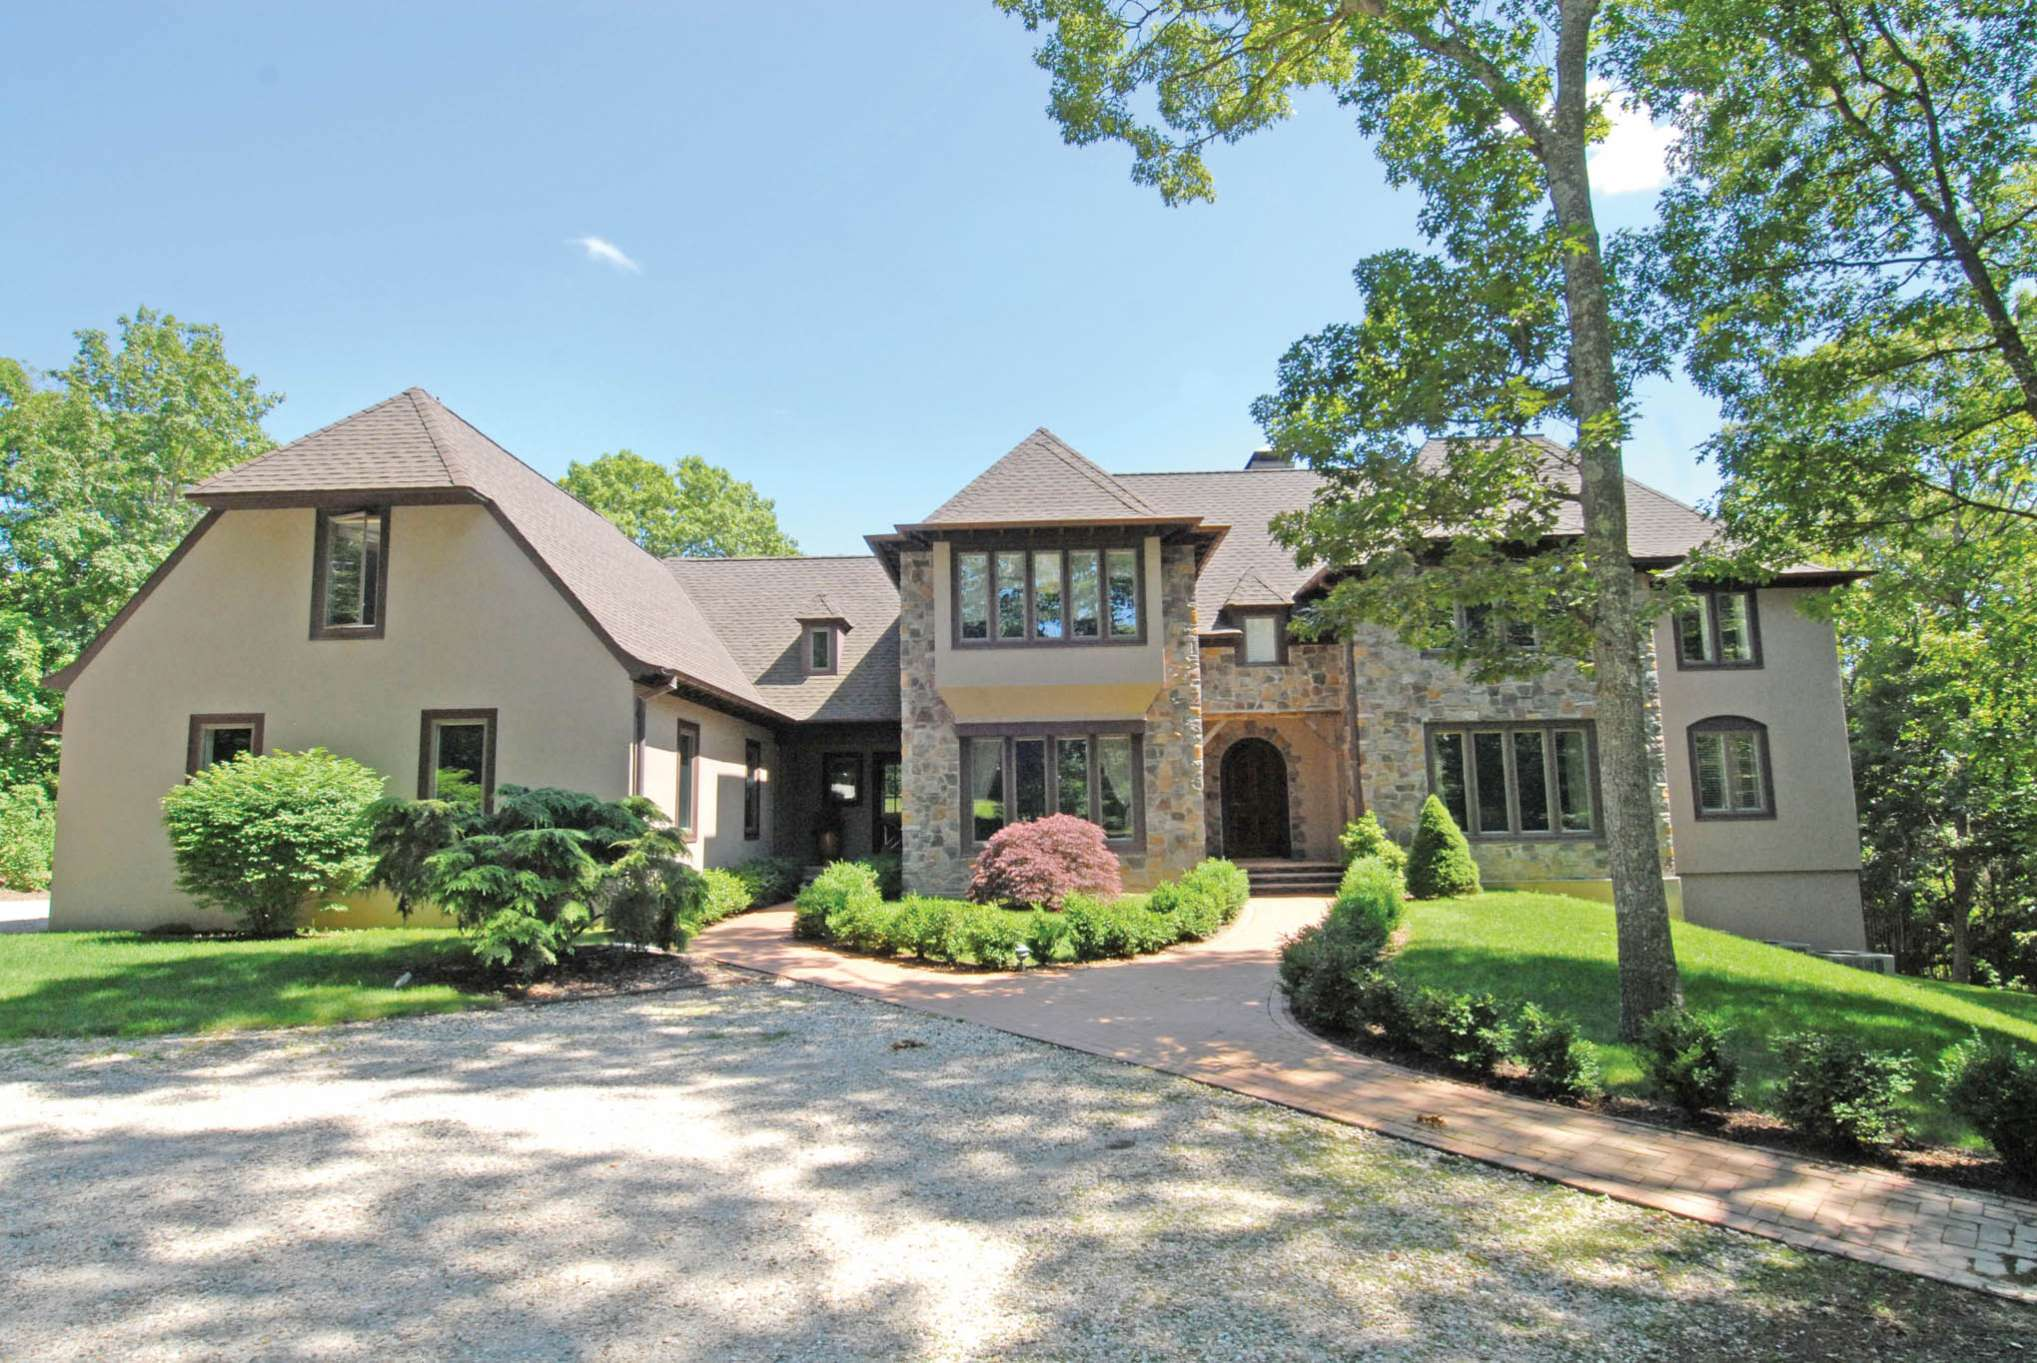 Additional photo for property listing at Elegant English Country Home - Southampton  Southampton, Nueva York